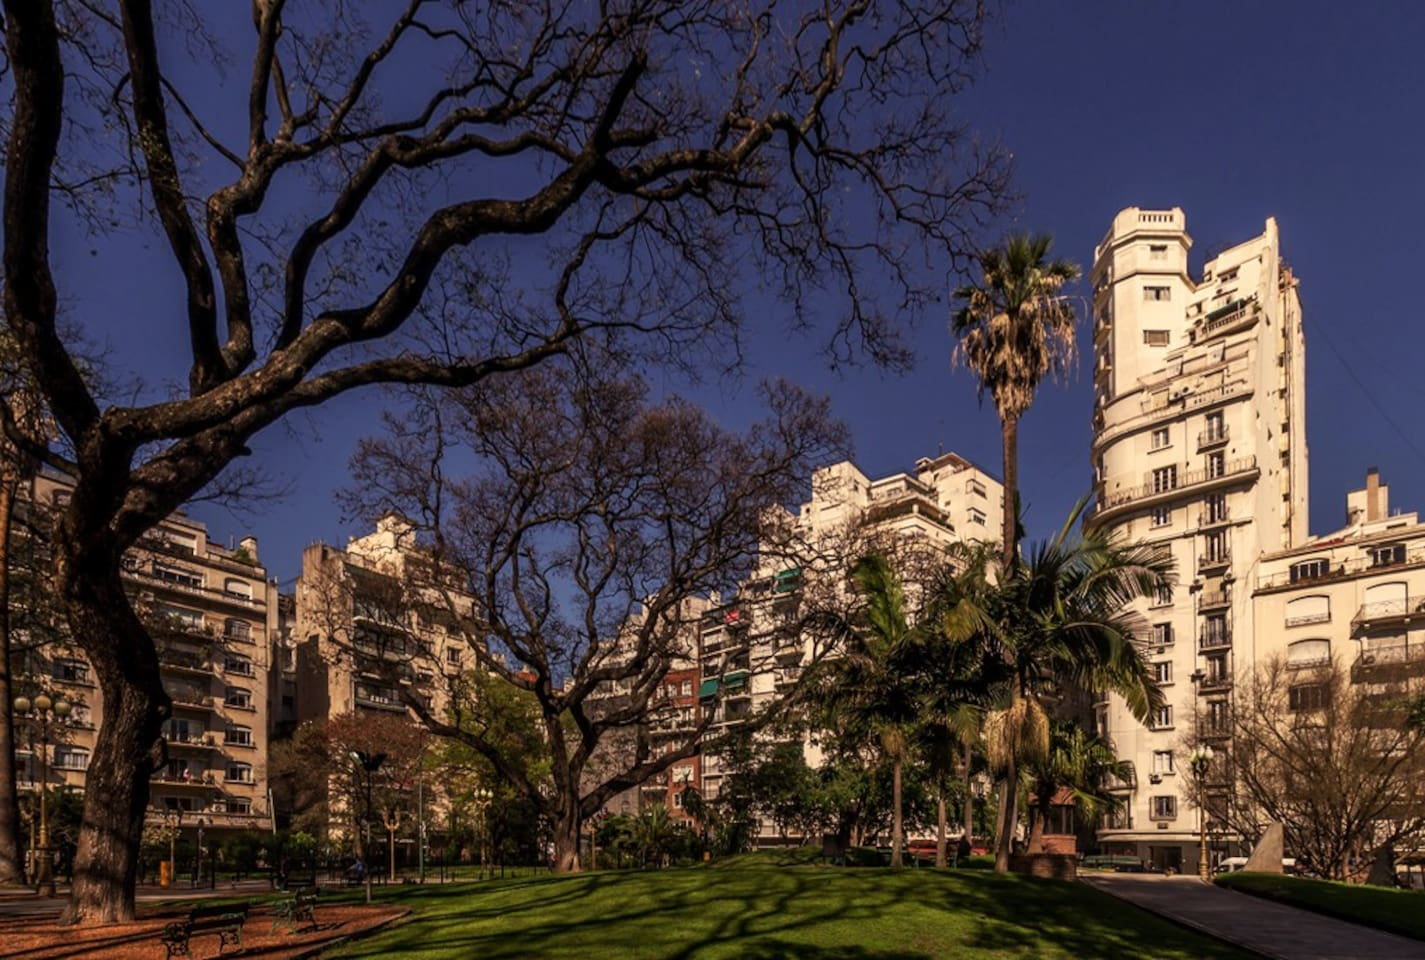 7 blocks away: The lovely Plaza V. López. (Recoleta).